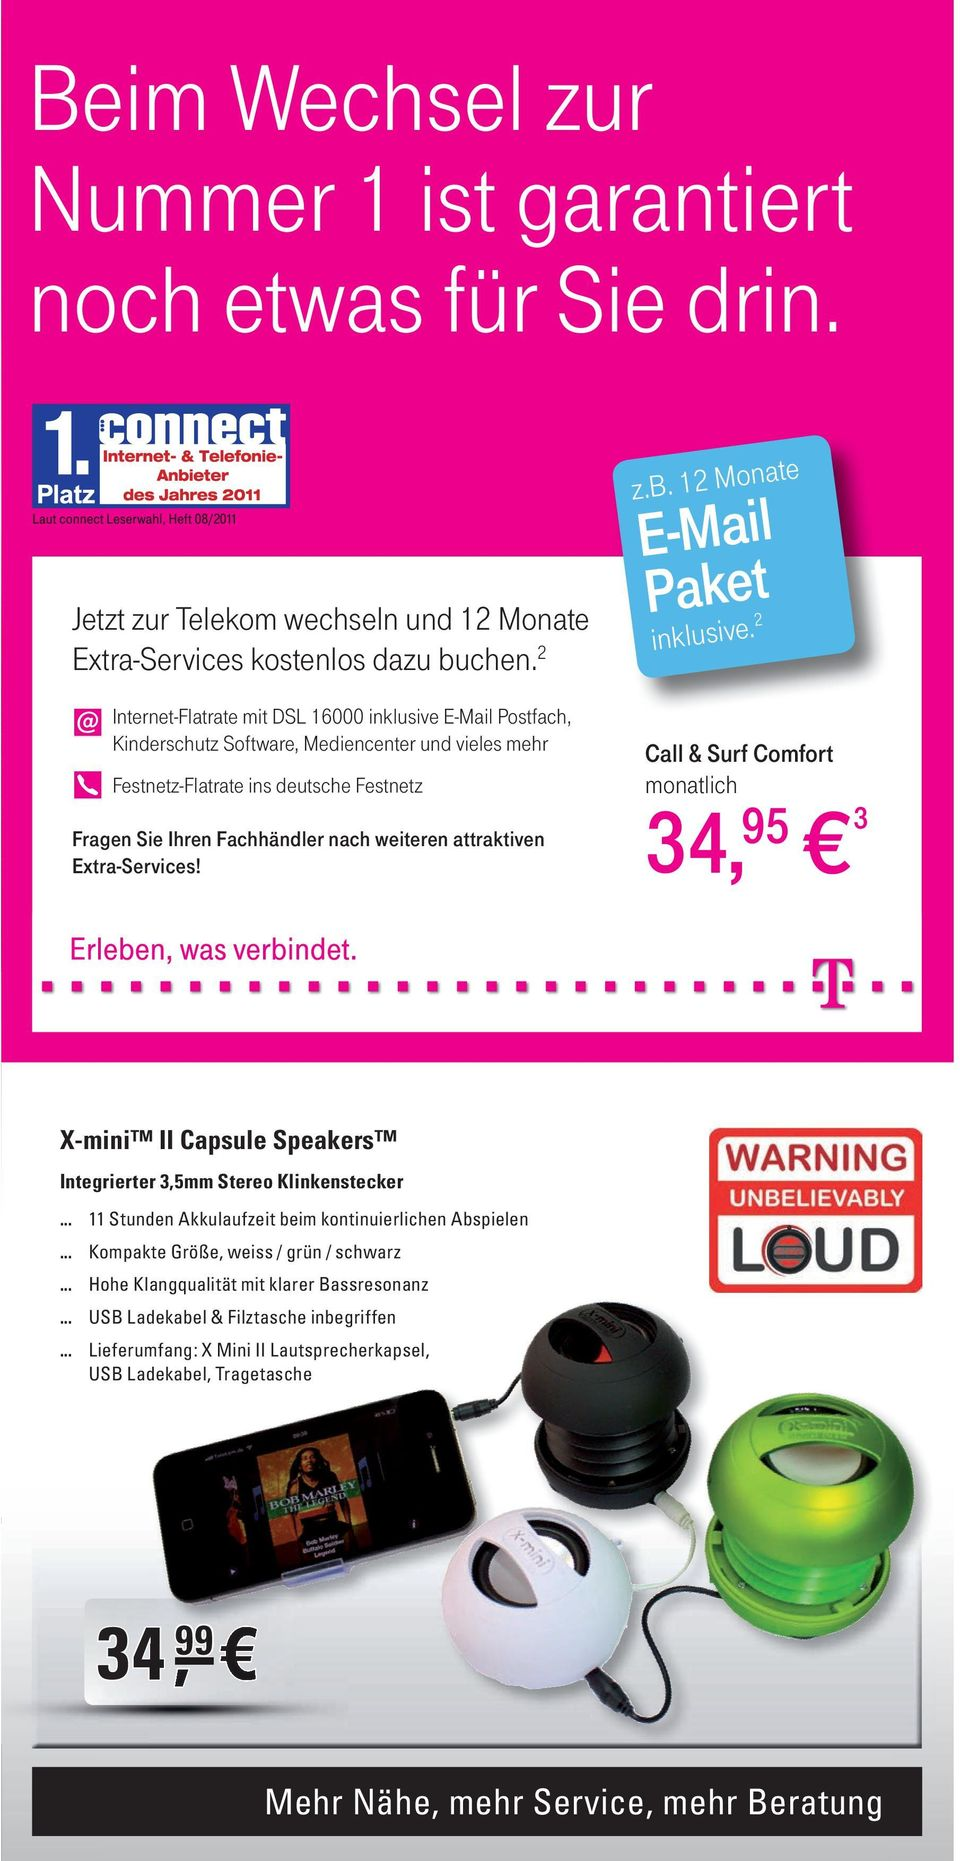 attraktiven Extra-Services! z.b. 12 Monate E-Mail Paket inklusive.